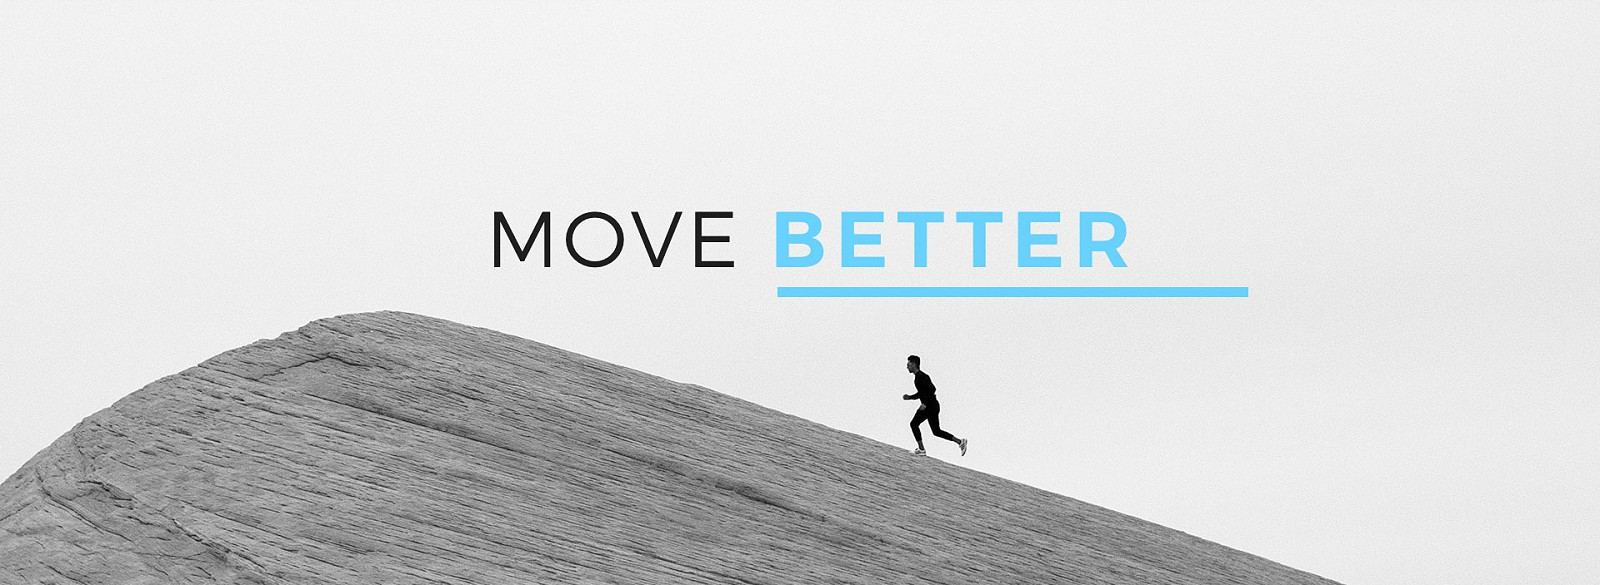 Move better